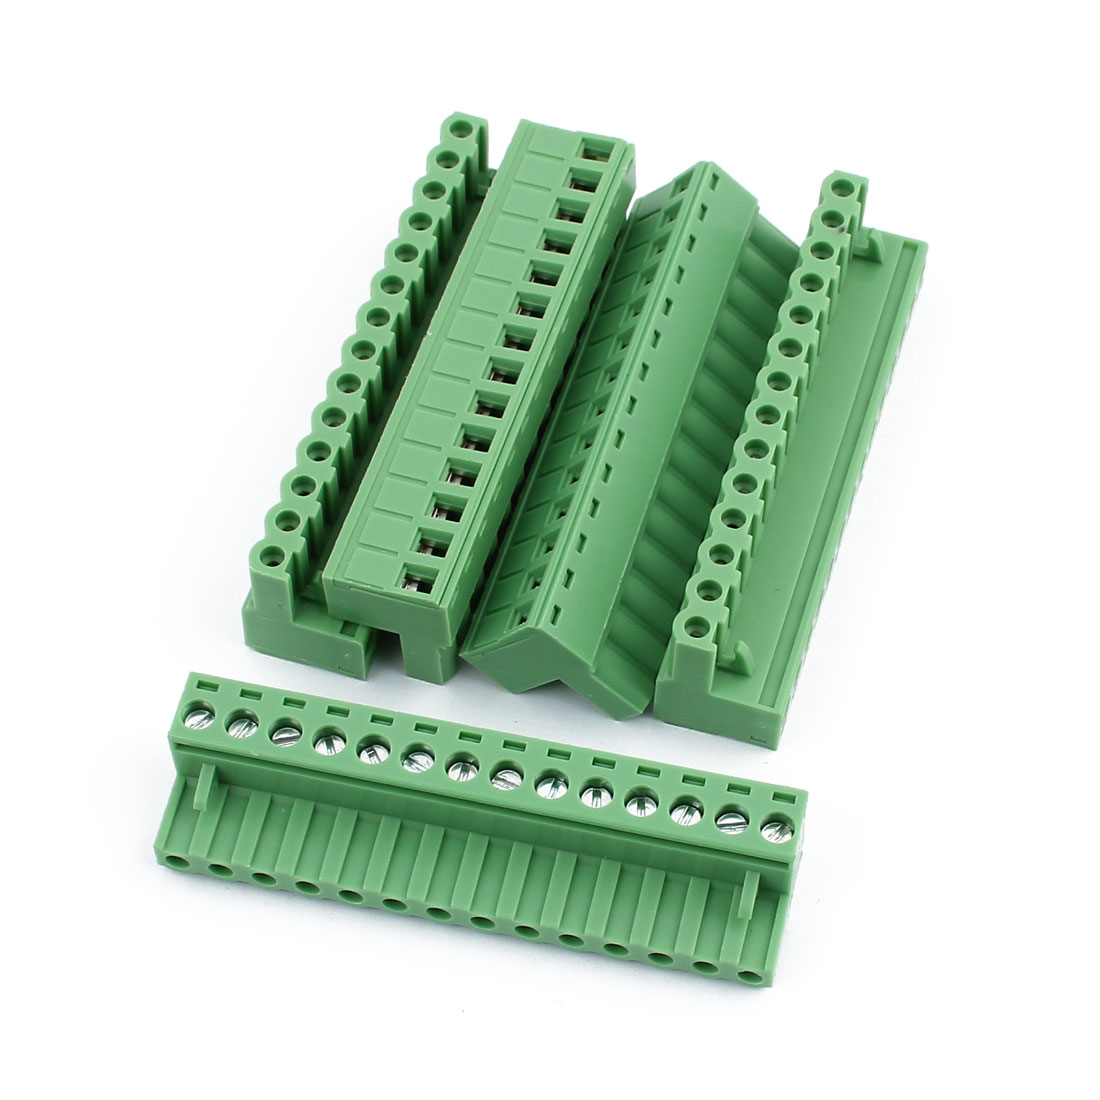 5Pcs 300V 10A KF2EDGK 5.08mm Pitch 14-Pin PCB Screw Terminal Block Connector - image 1 of 1